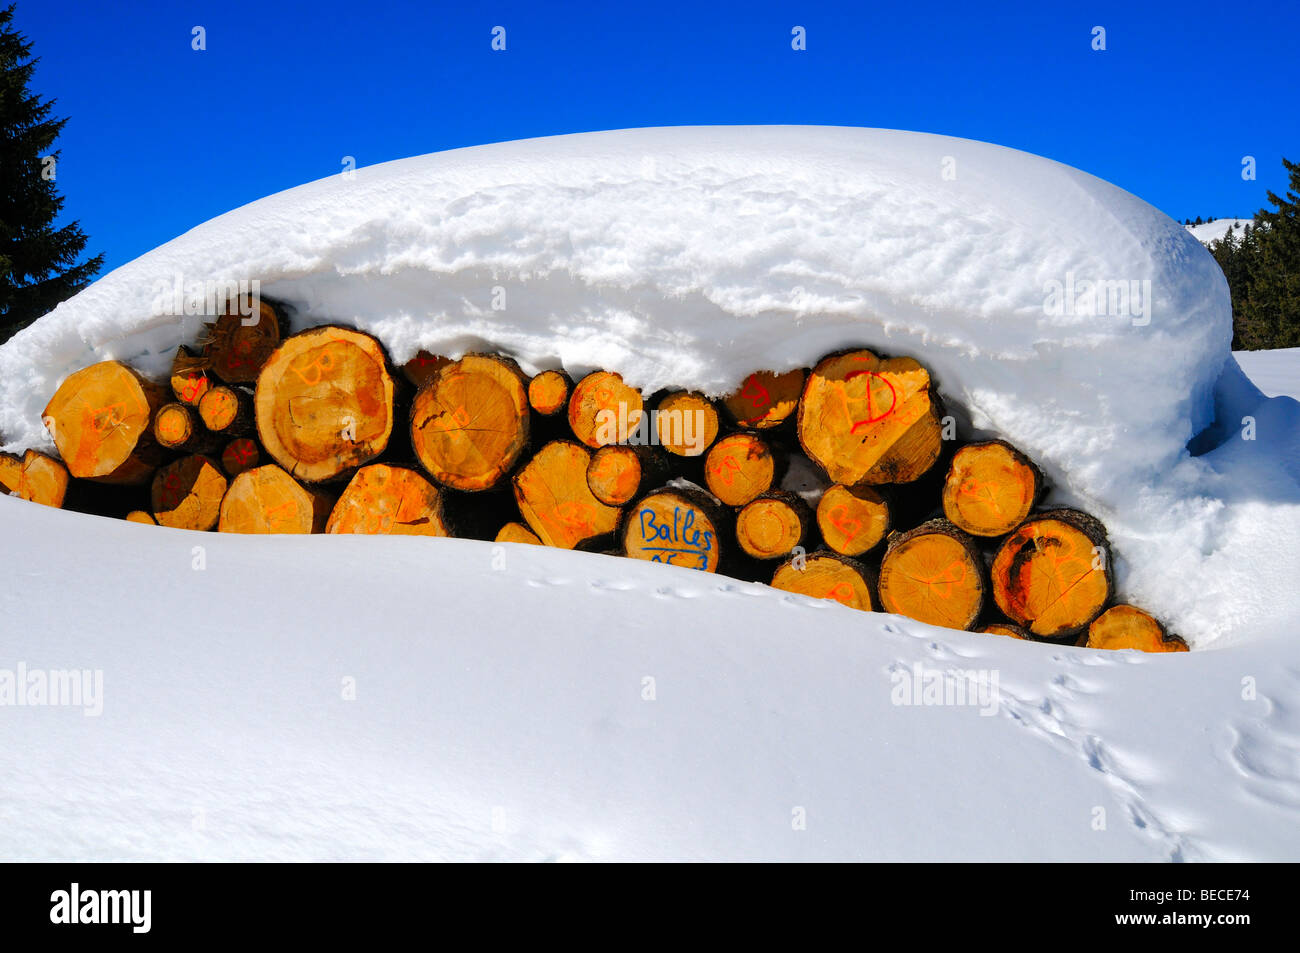 Forestry, cut logs under a thick snow cover, Jura, Switzerland - Stock Image